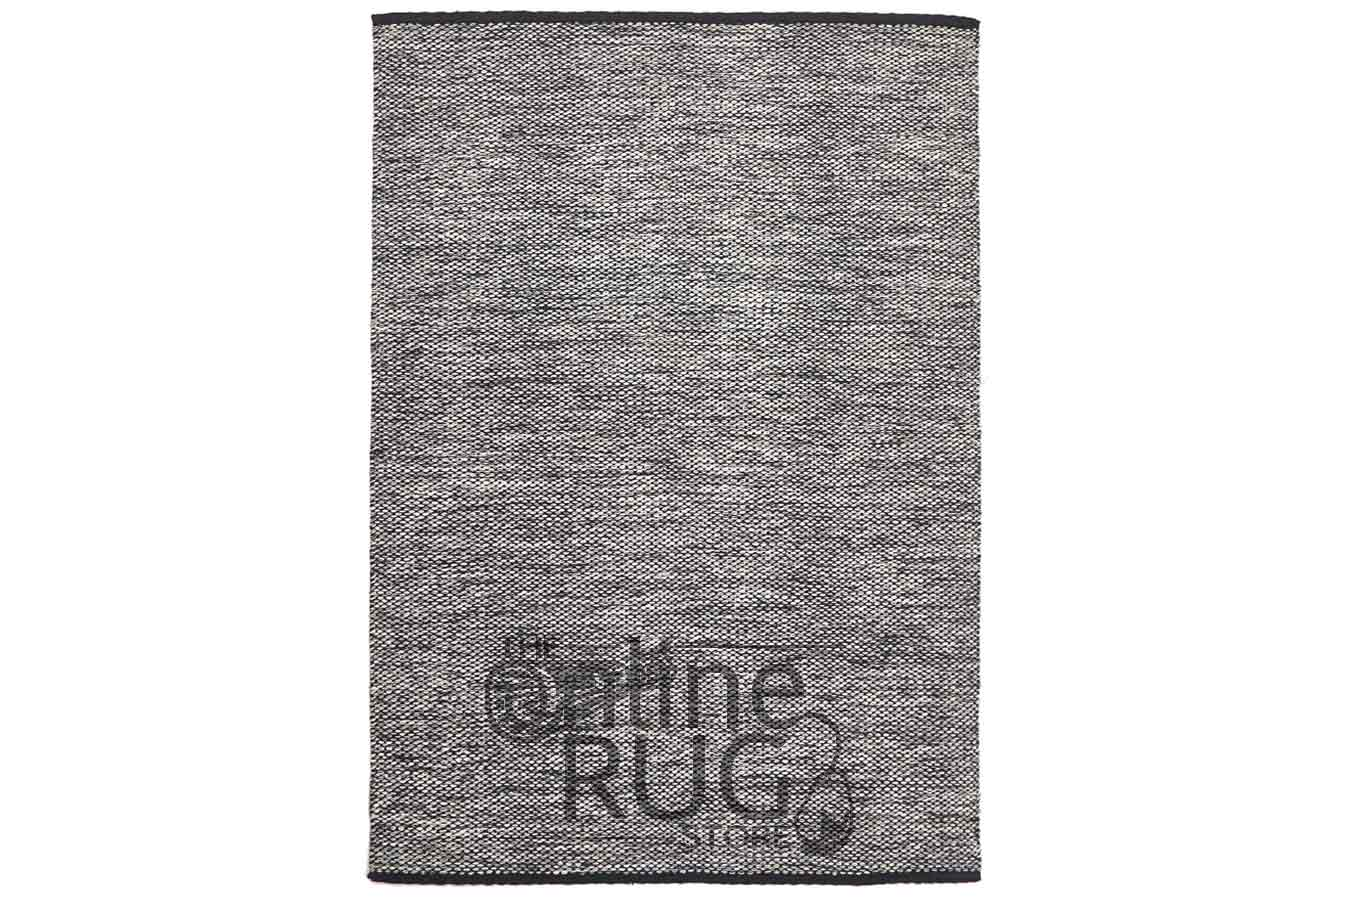 Black Natural White Argentina Rug